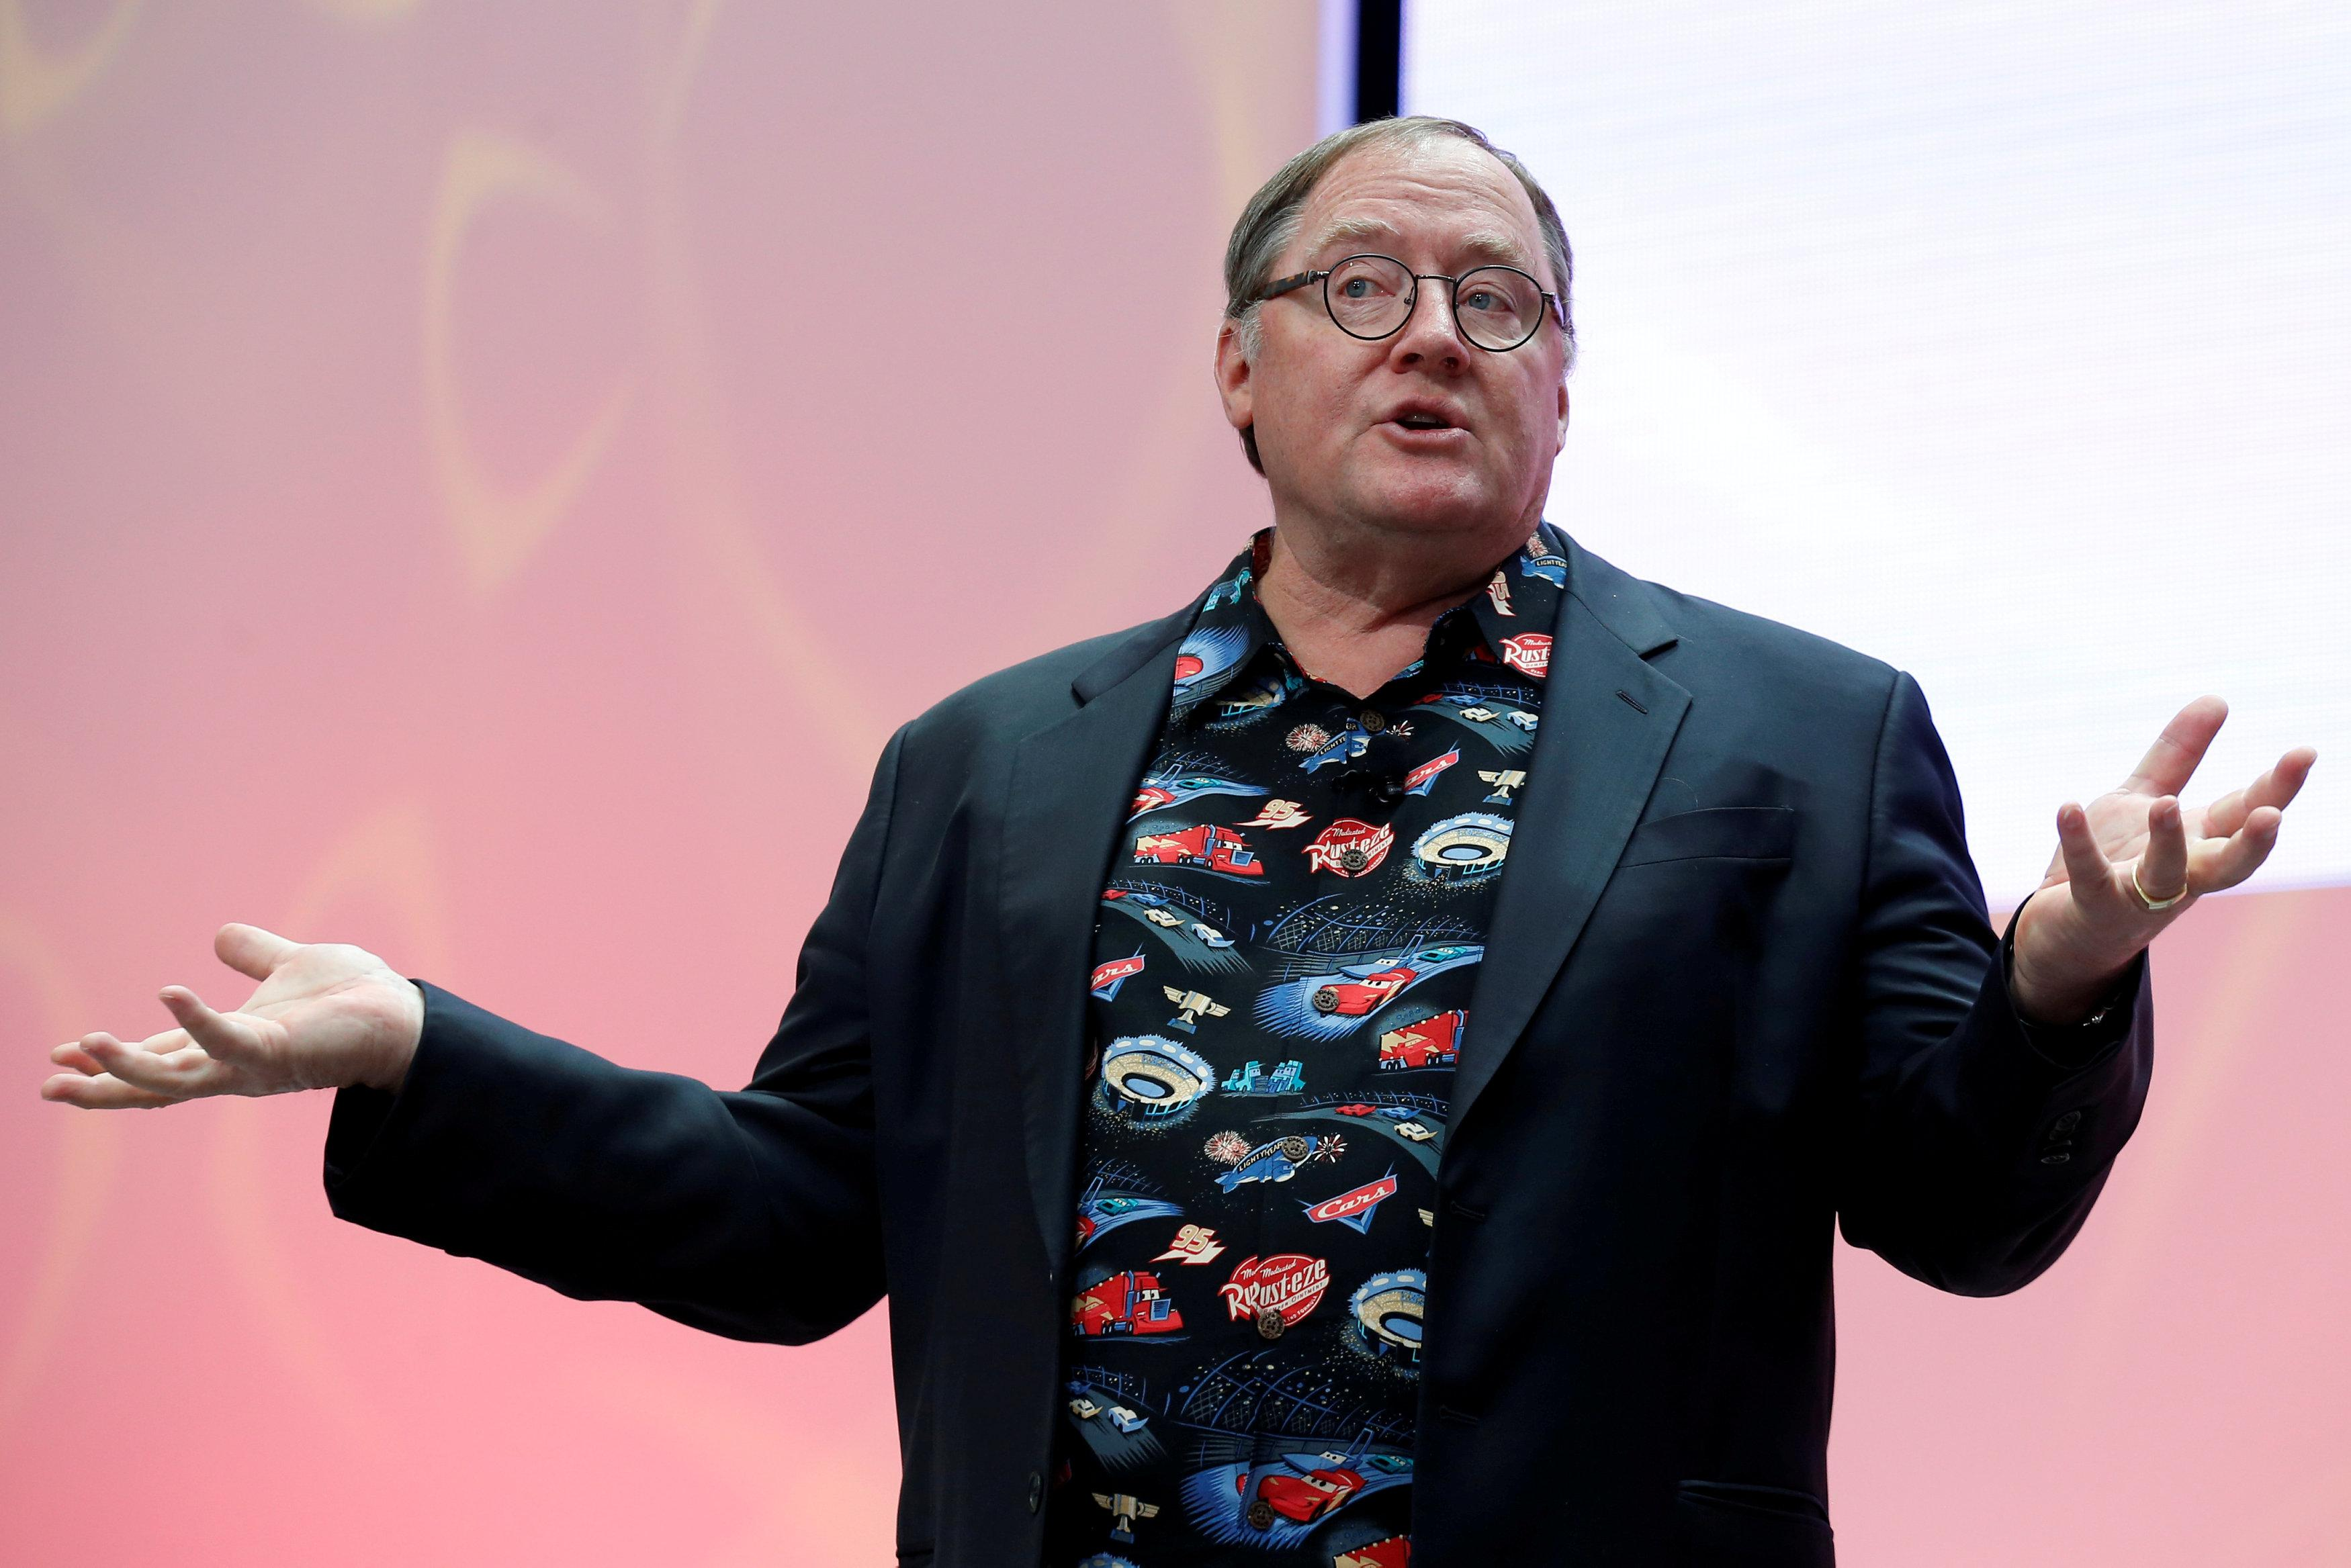 John Lasseter, Chief Creative Officer of Walt Disney and Pixar Animation Studios, speaks during the North American International Auto Show in Detroit, Michigan, U.S. on January 8, 2017.  Brendan McDermid